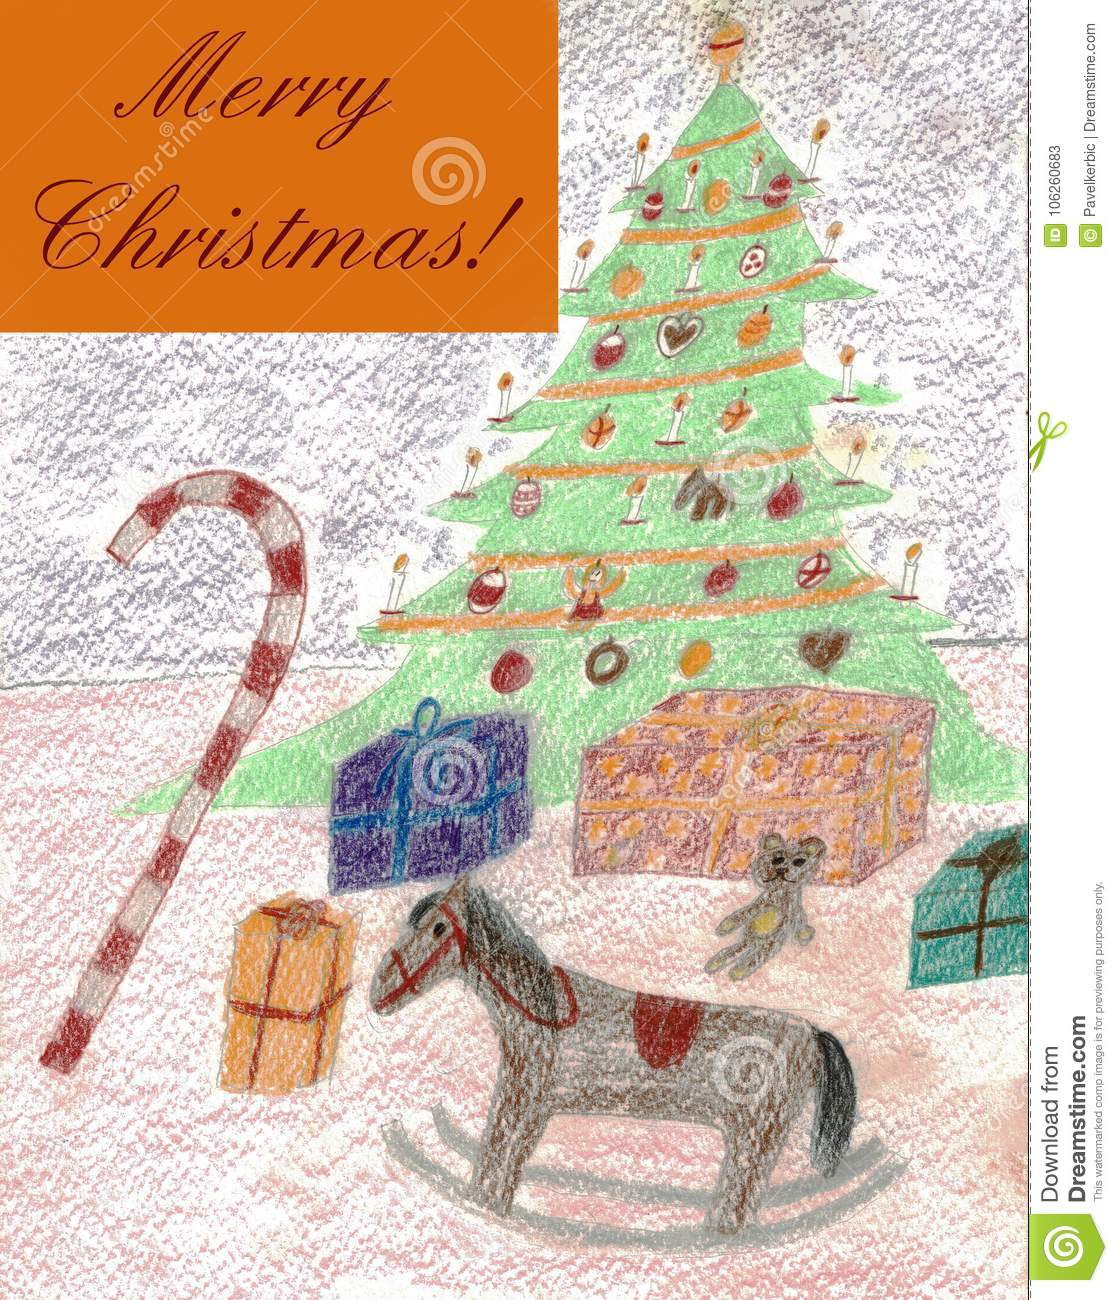 Merry Christmas! - Colored Pencil Drawing Stock Vector ...